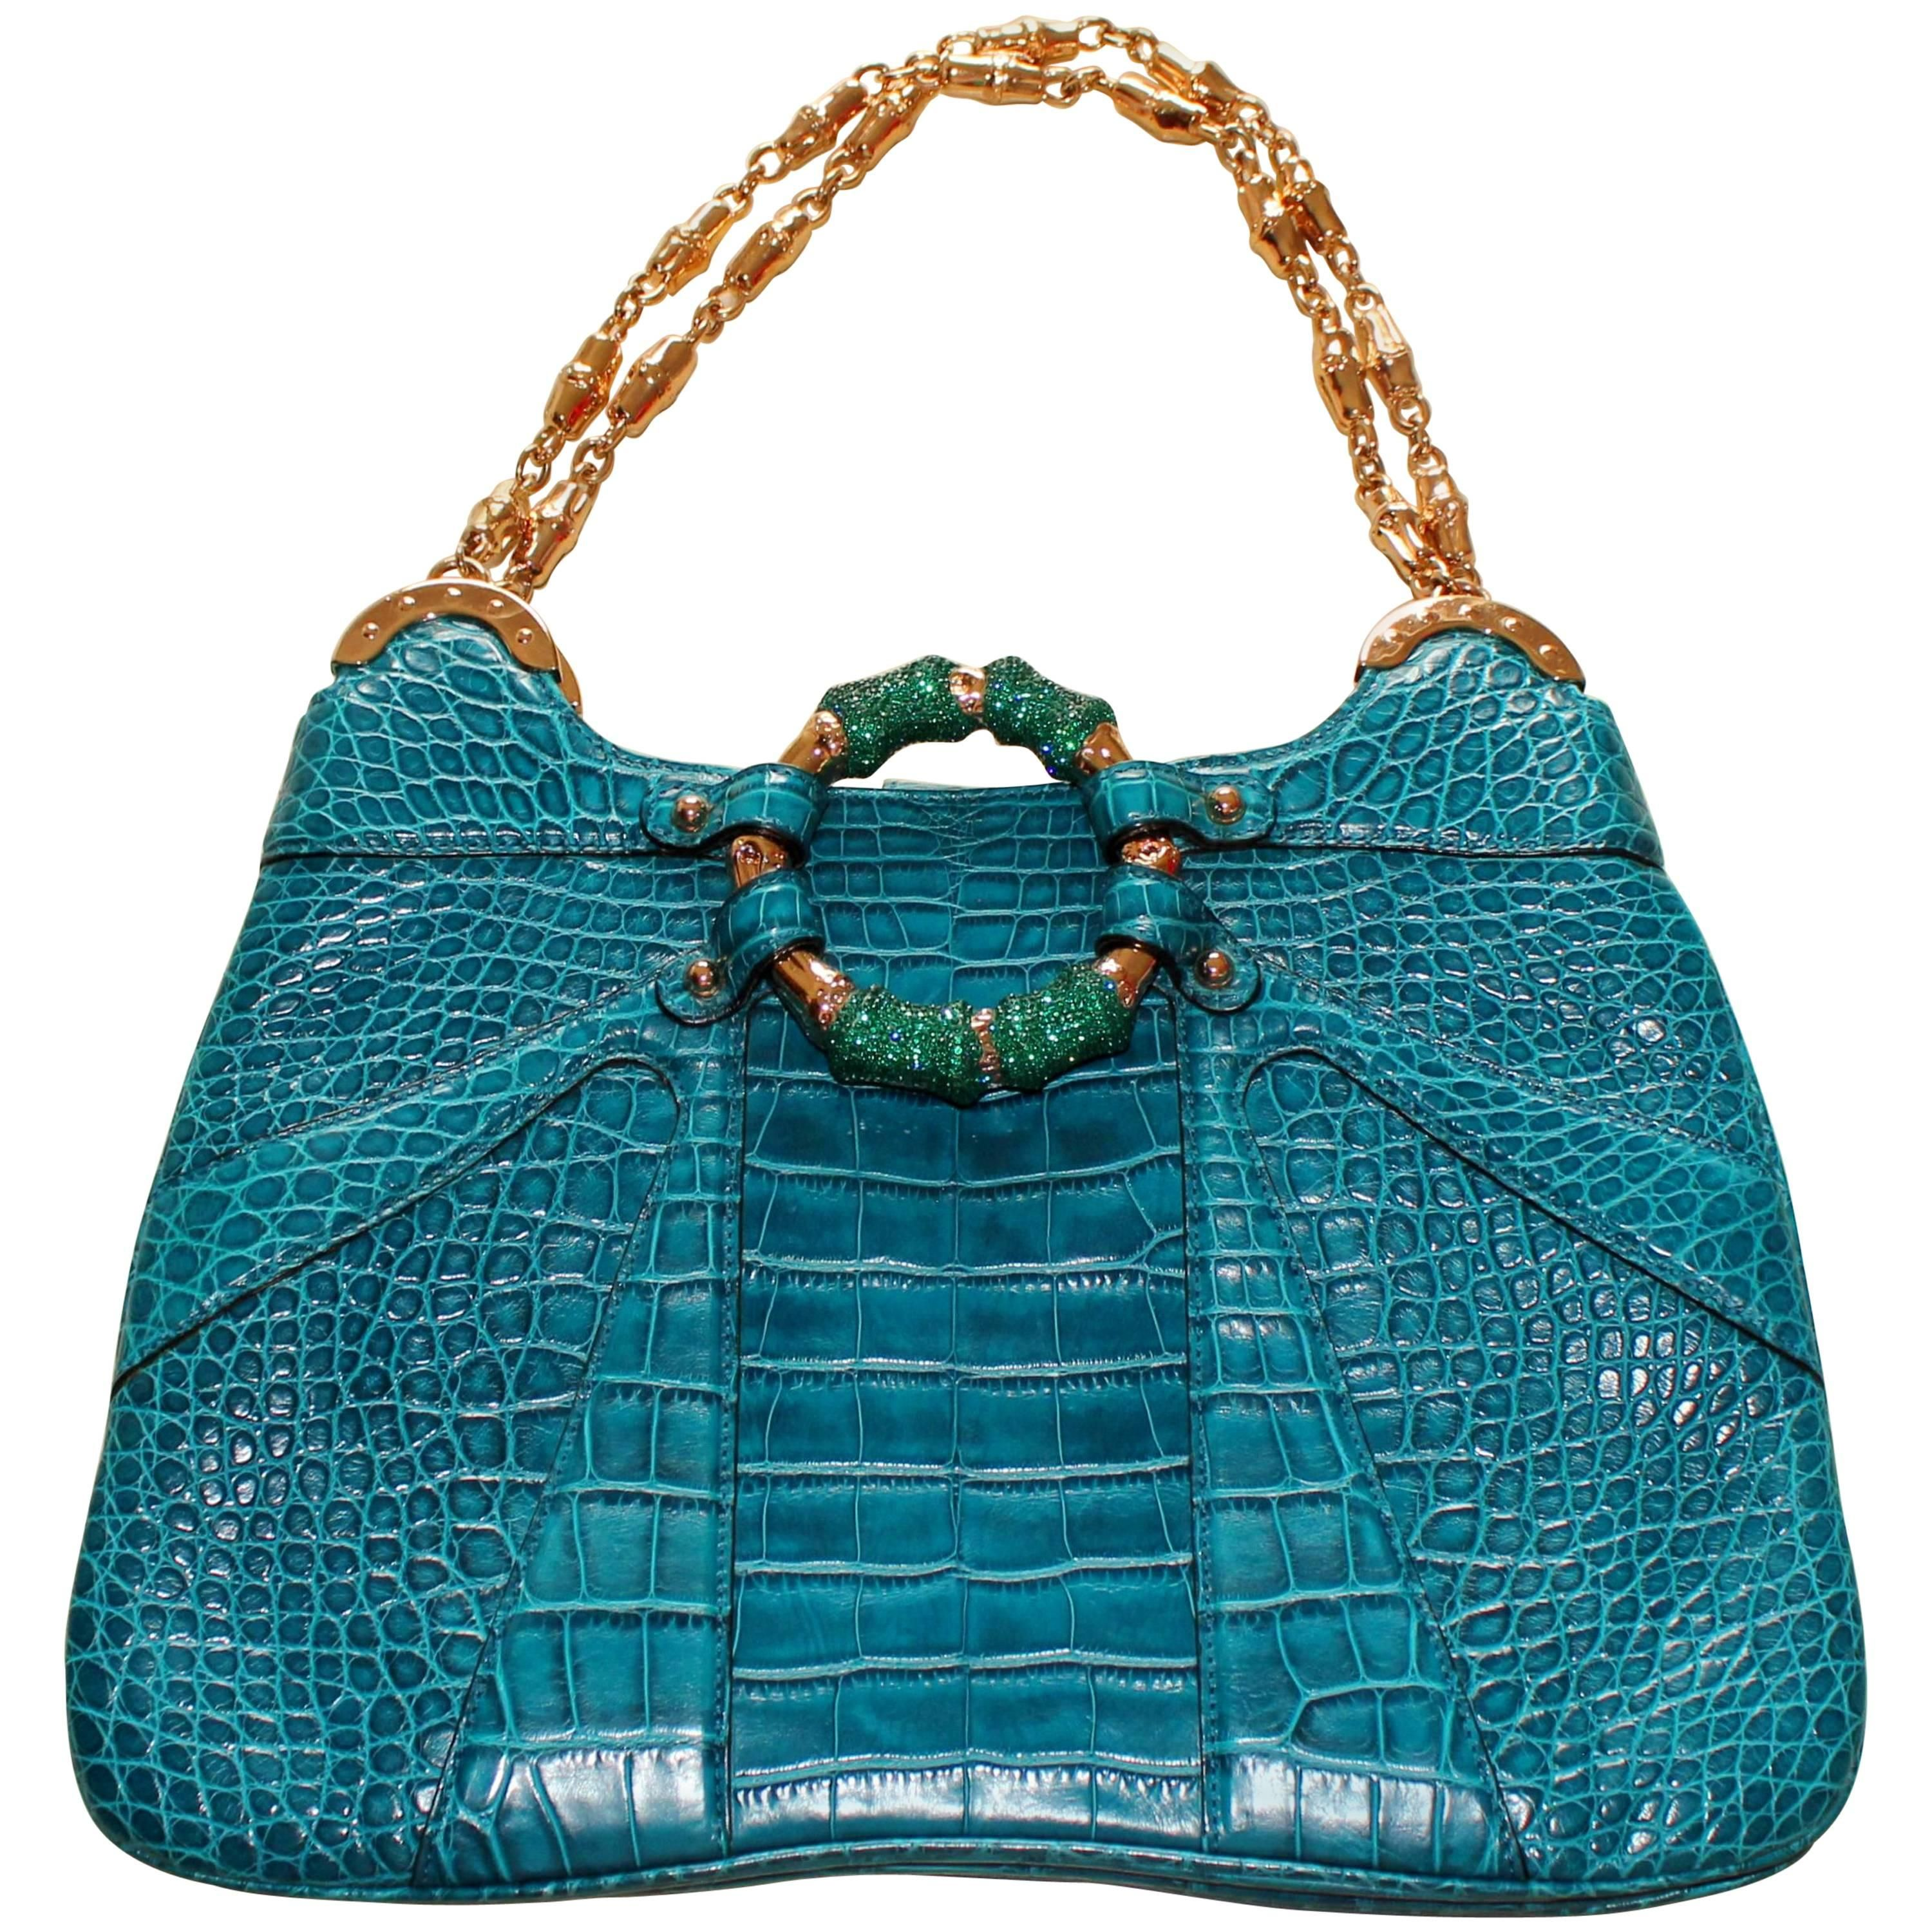 56f248a141f6 Gucci AquaTurquoise Exotic Crocodile Alligator Crystallized Bamboo Handbag  Purse For Sale at 1stdibs